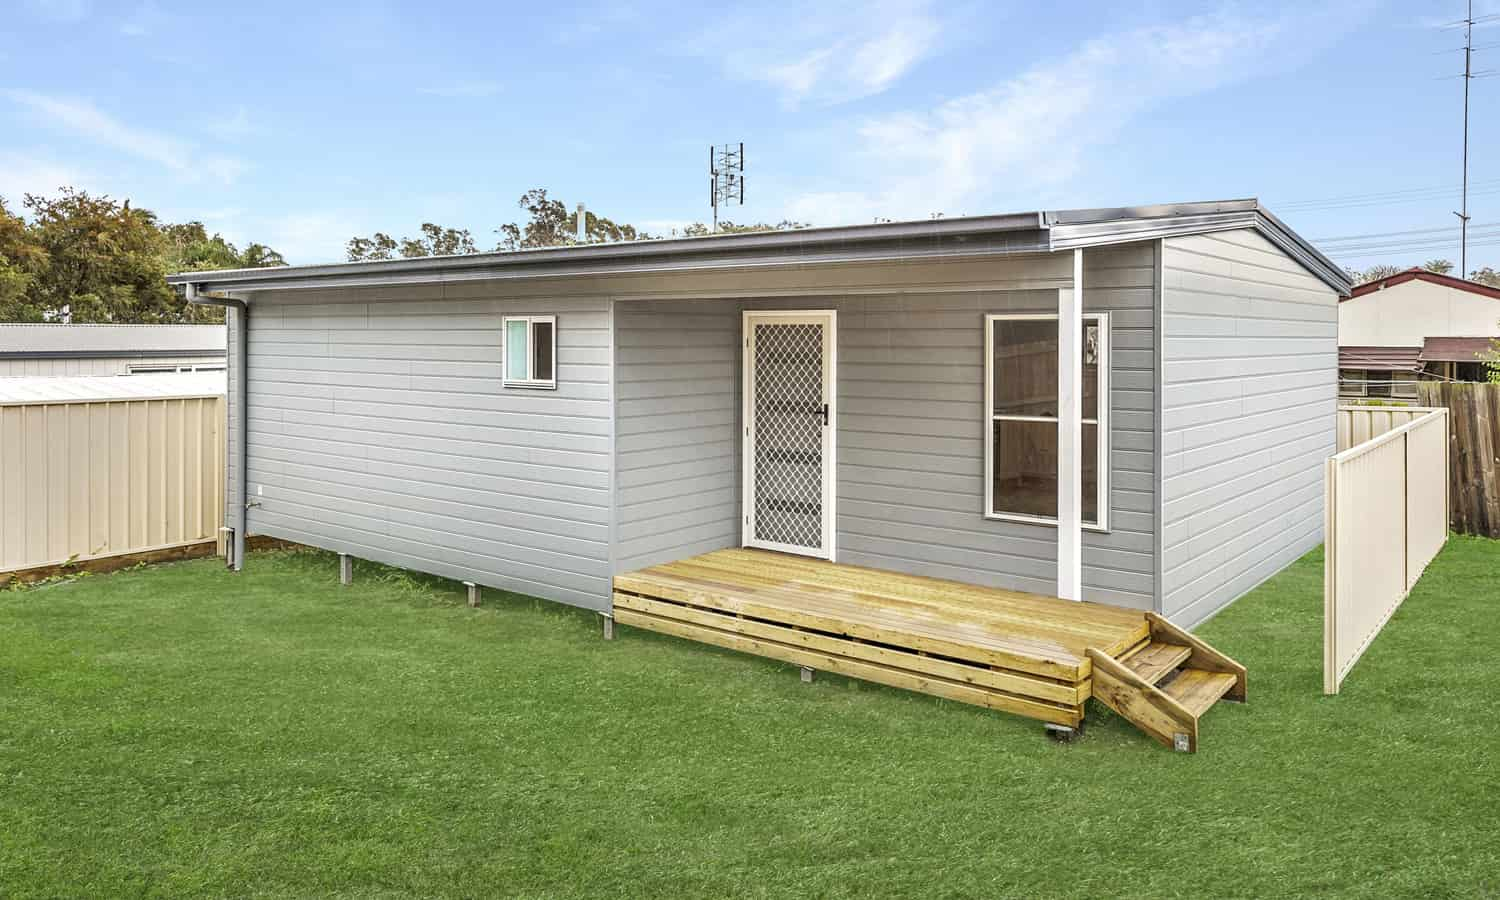 A granny flat property investment that's long on smarts